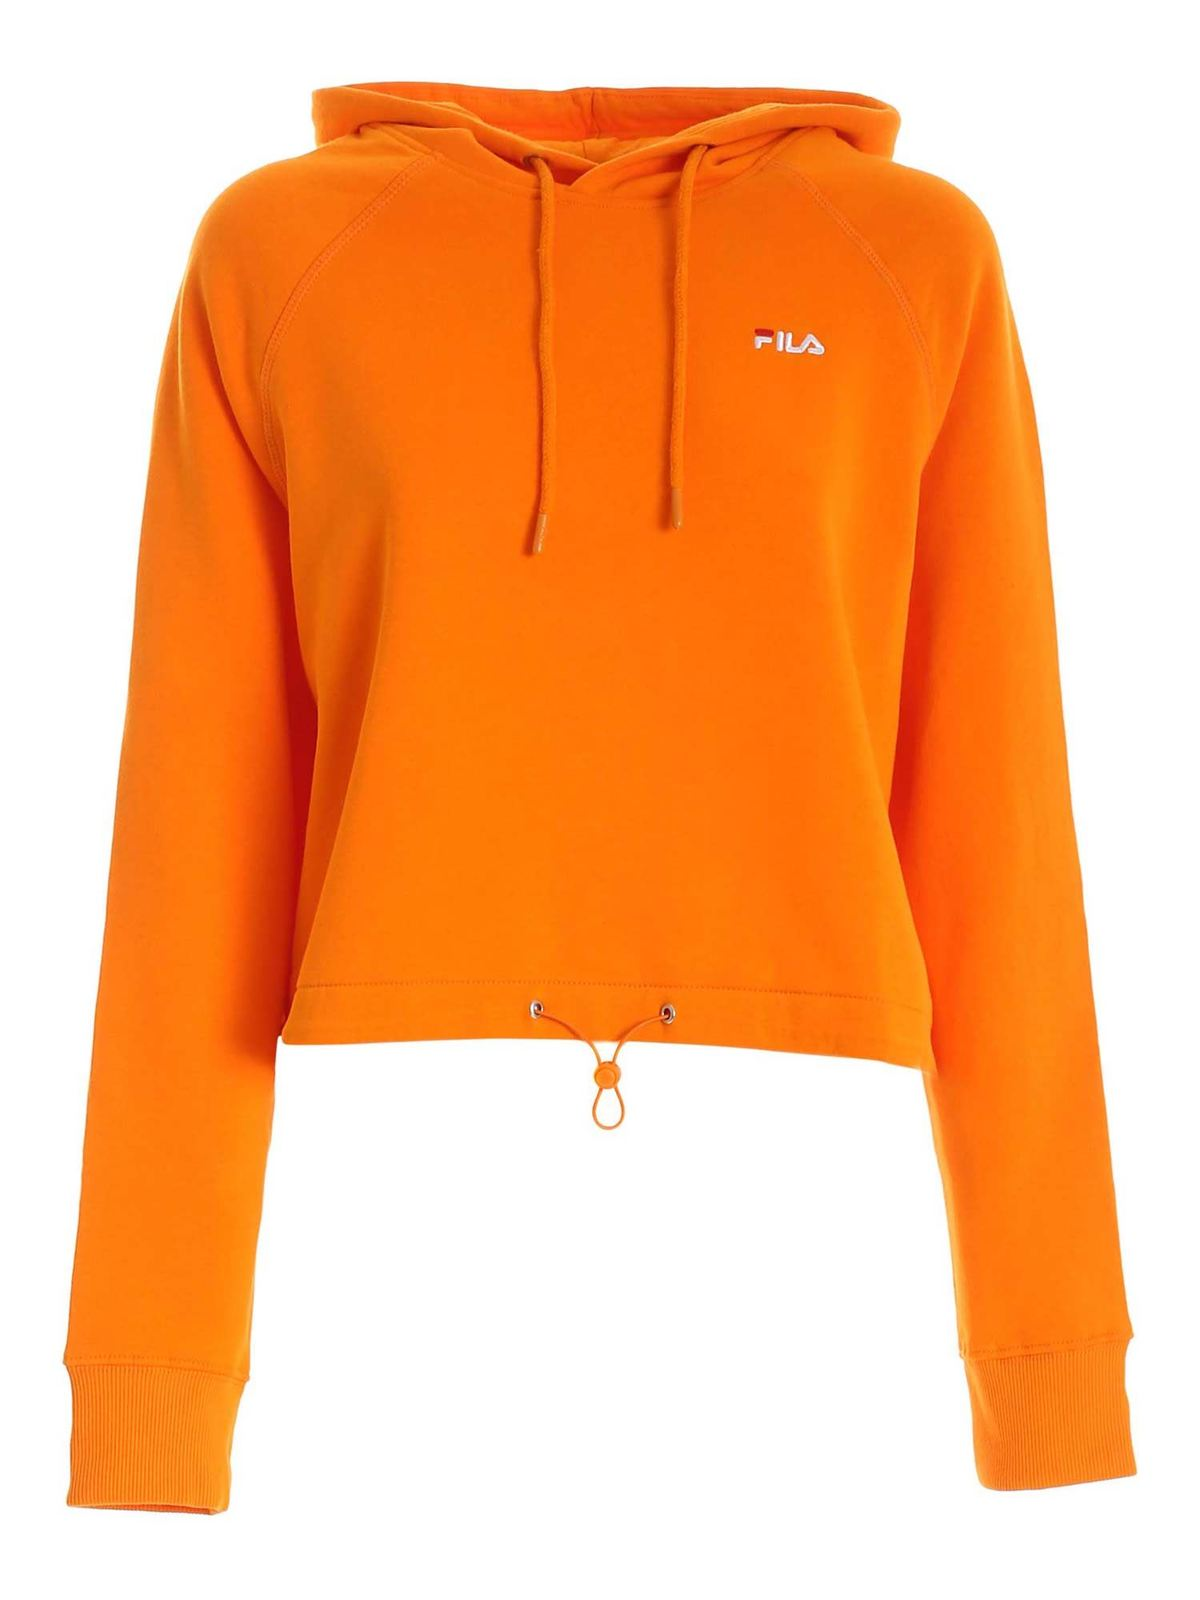 Fila ELAXI CROPPED SWEATSHIRT IN ORANGE